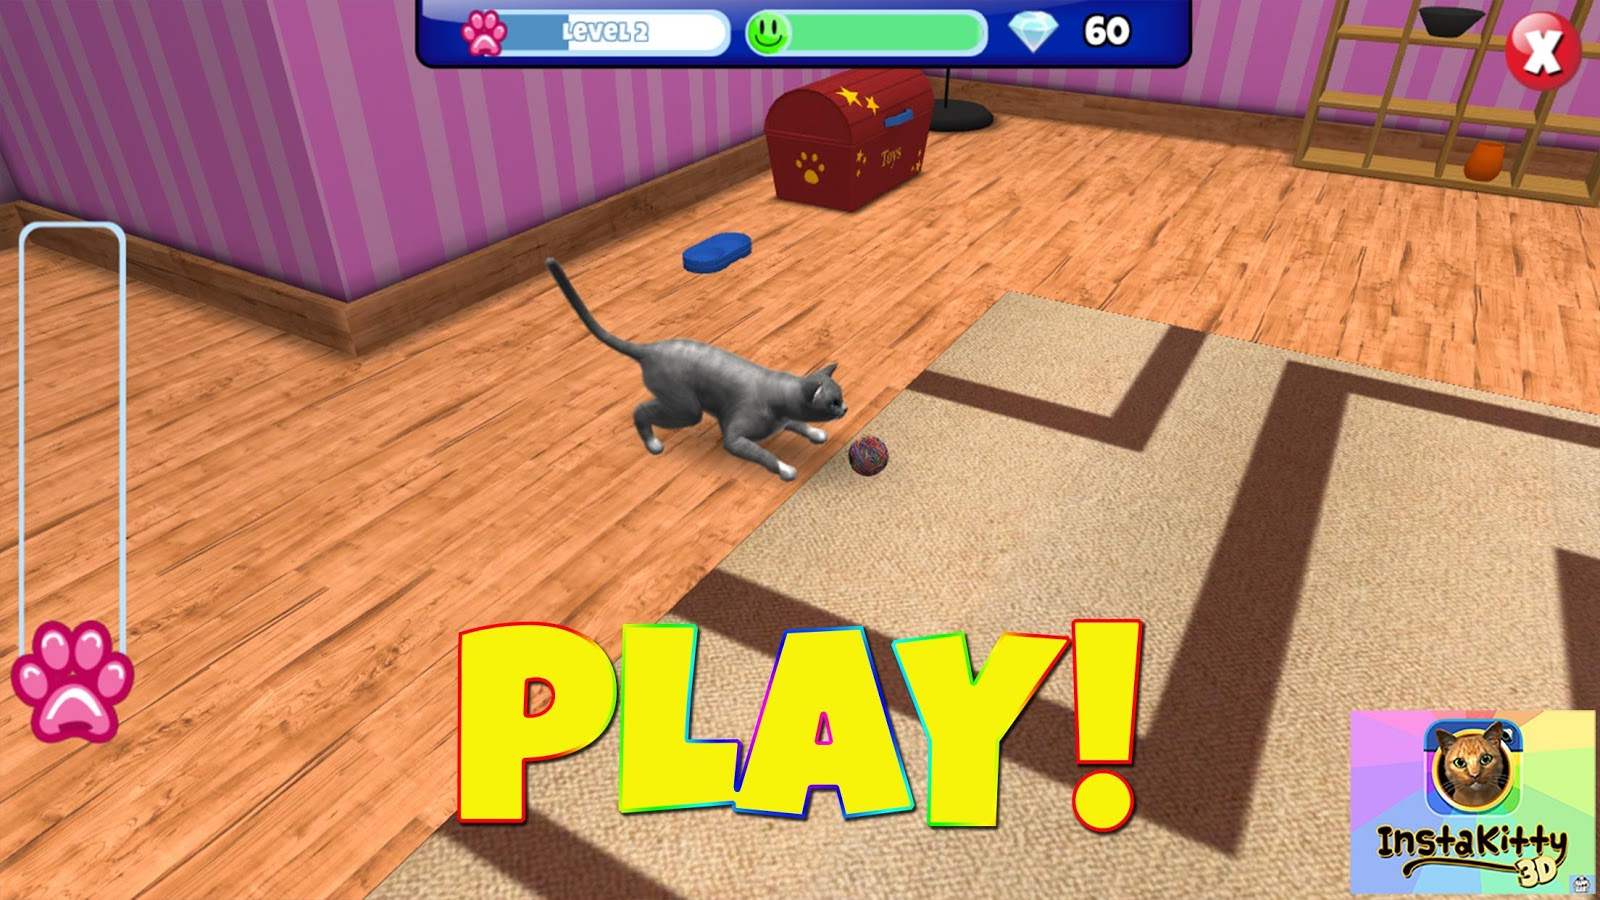 InstaKitty 3D-Virtual Cat Sim- screenshot